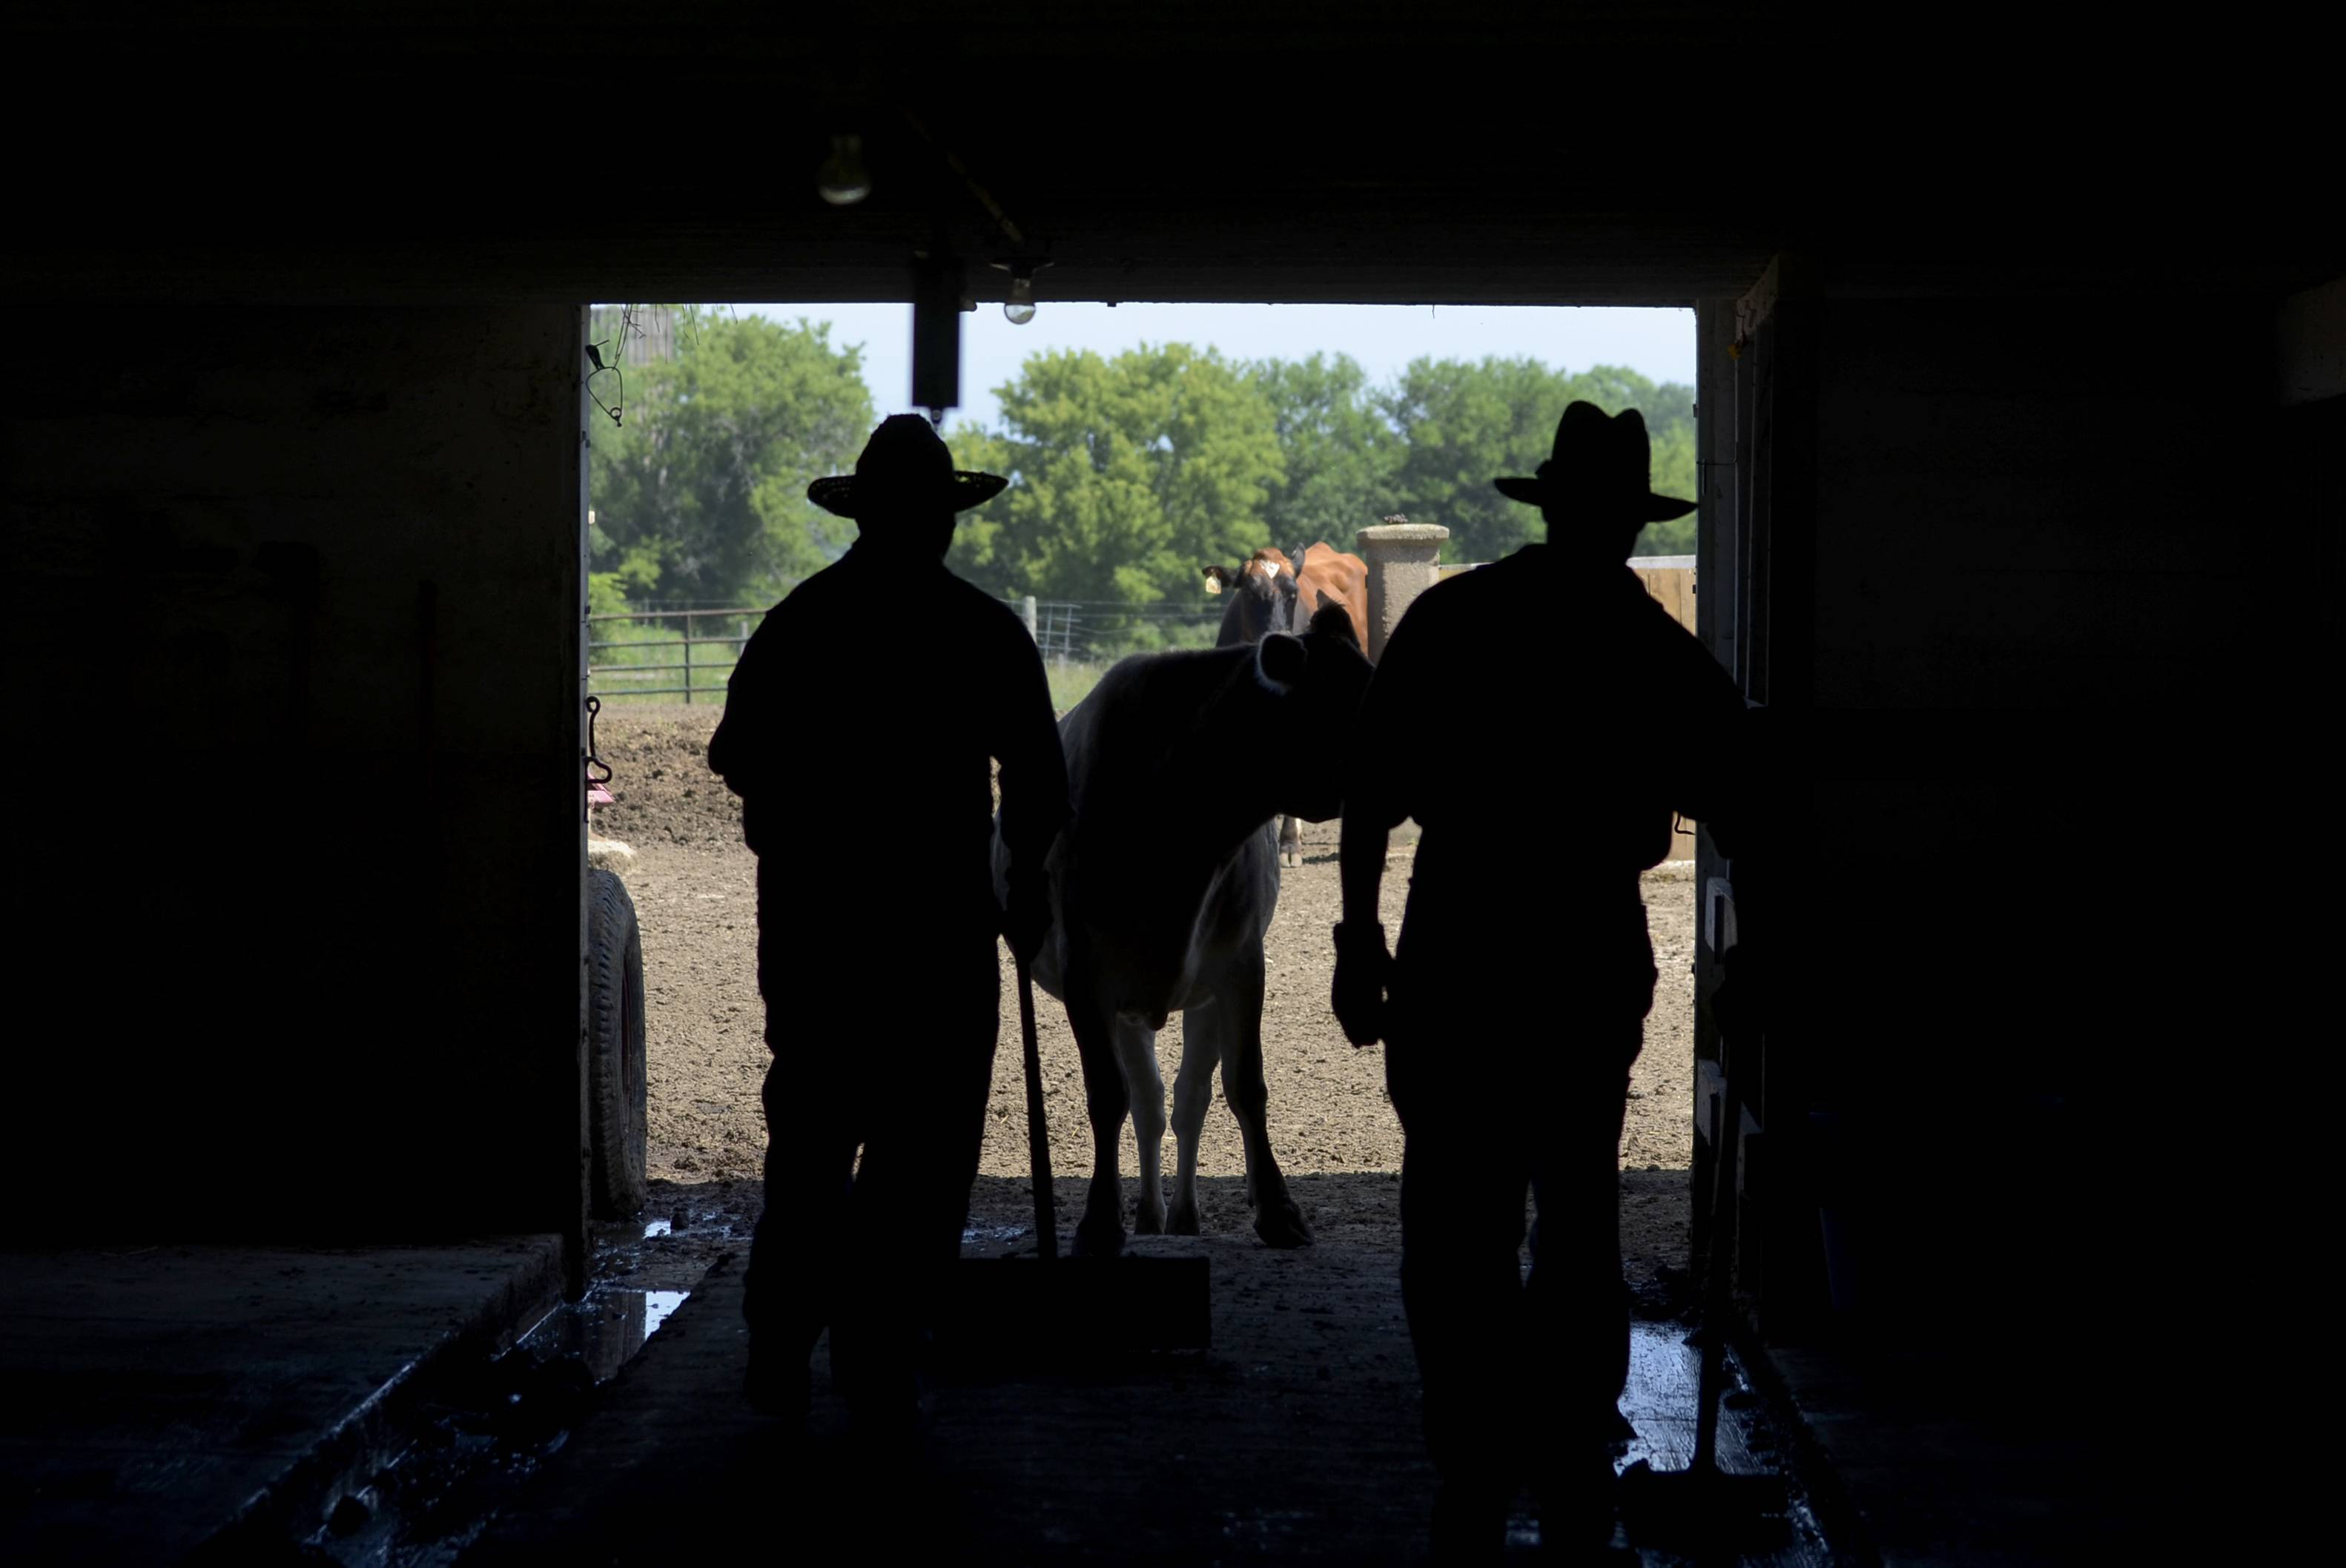 Primrose Farm's Brett Garrett, left, director of development, and Justin Sikora, agricultural interpreter, take the cows out after milking Wednesday at the farm in St. Charles. The living history farm offers tours and hands-on activities about life on a mid-20th-century dairy farm.